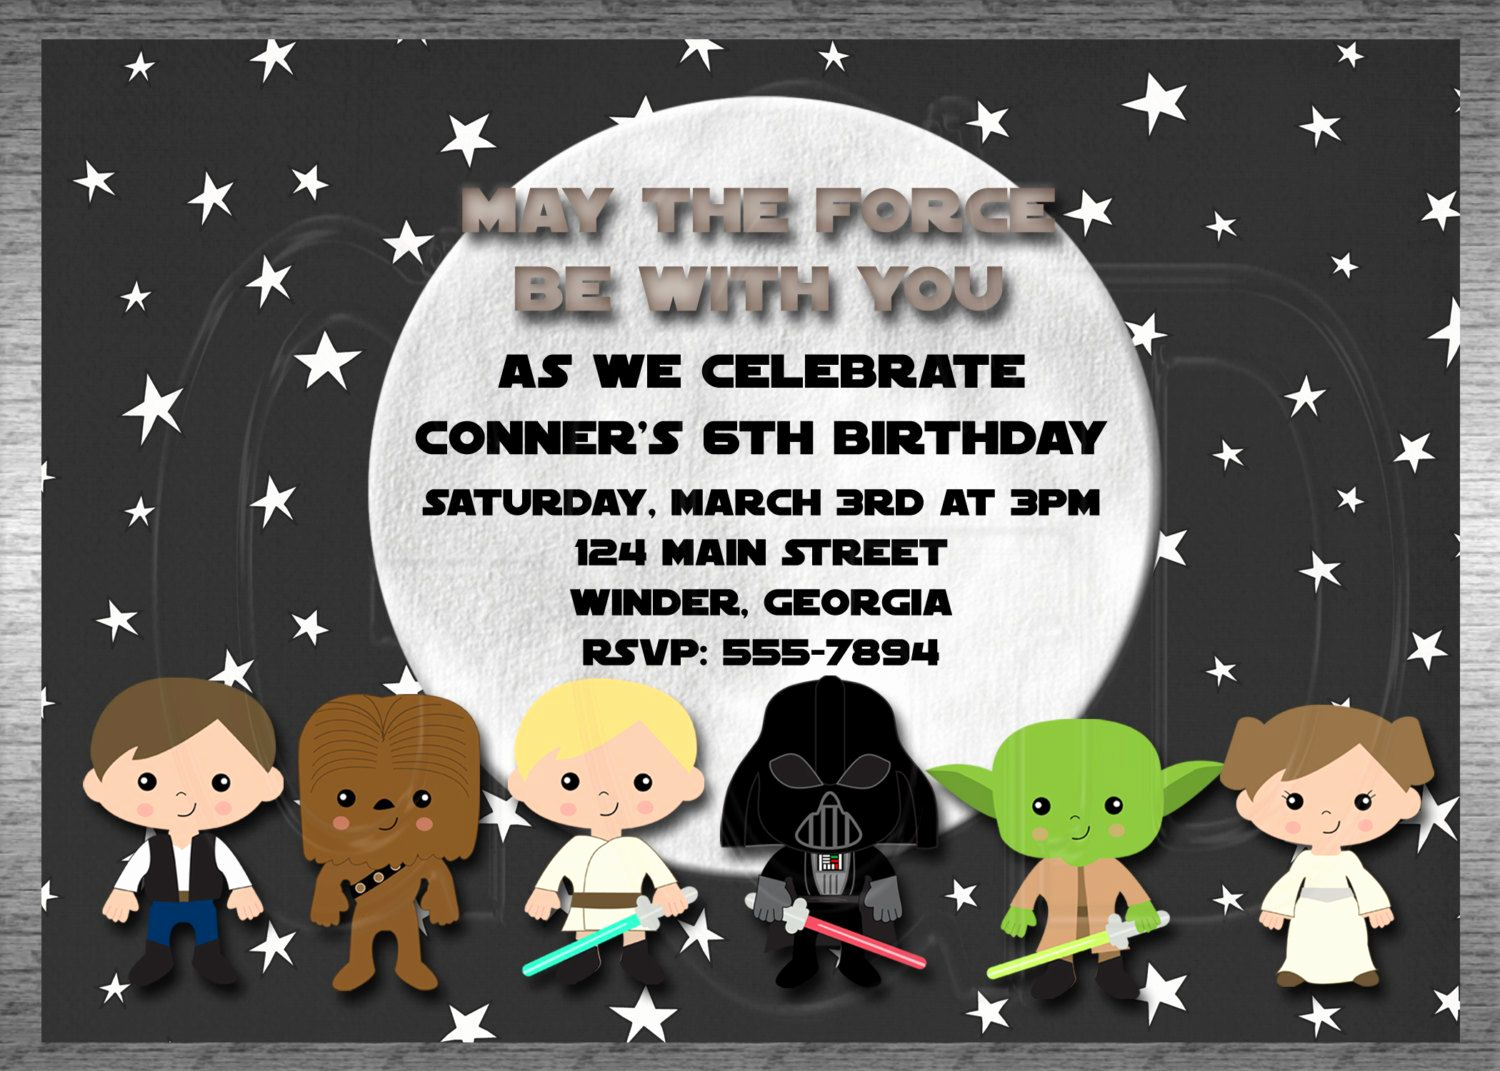 Star Wars Invitation Templates New Galaxy Star Wars Invitation Star Wars Birthday Party